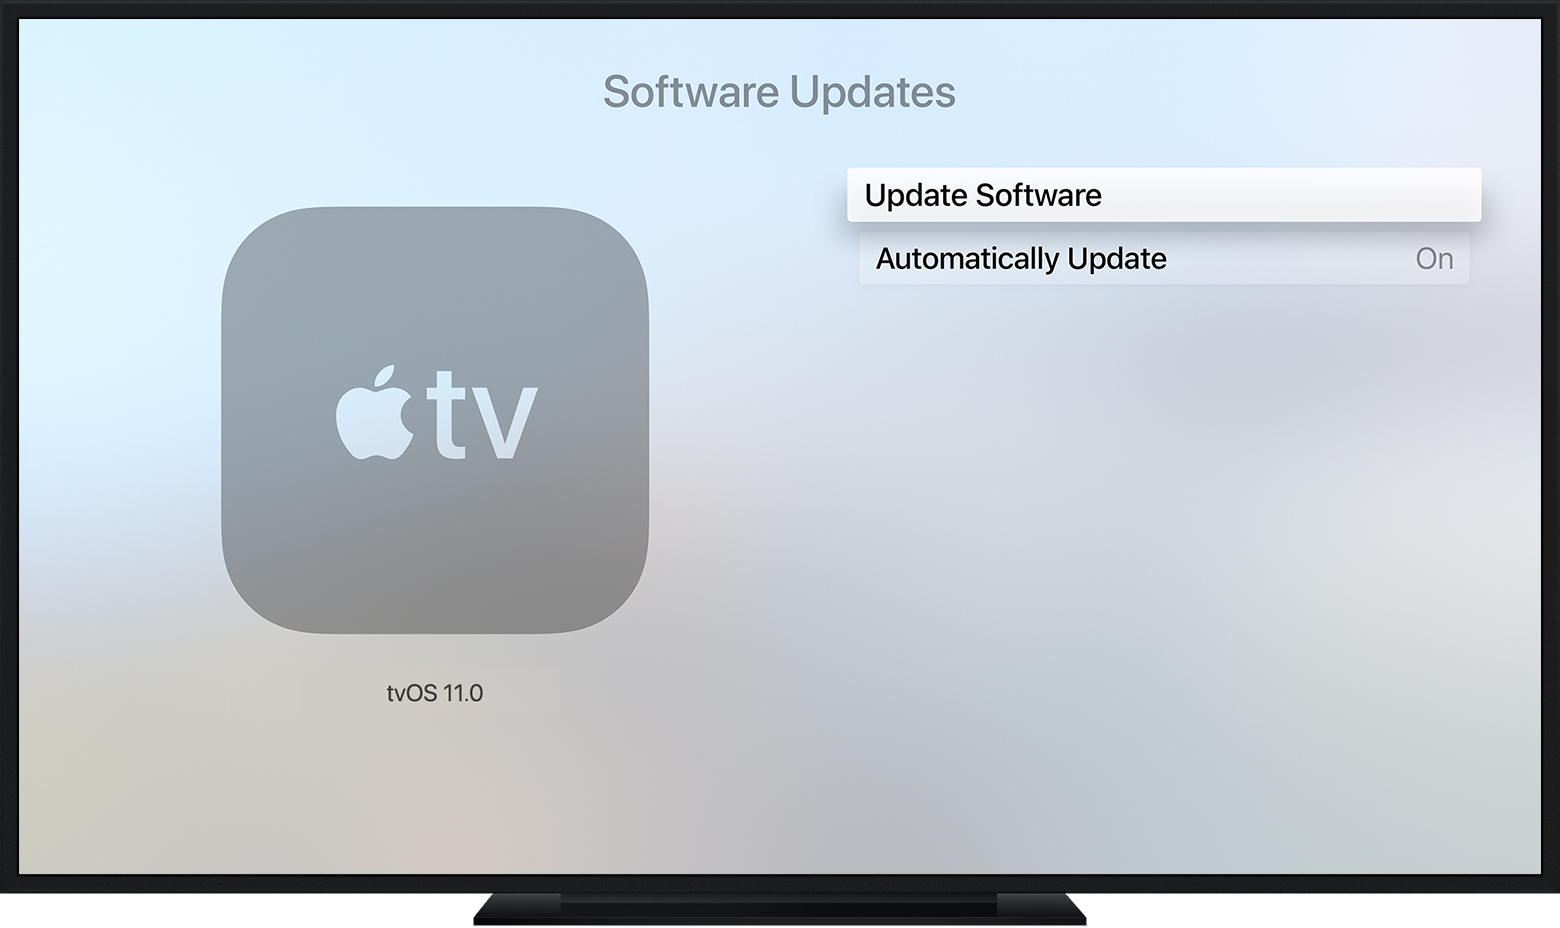 on apple tv 4k or apple tv 4th generation go to settings system software updates and select update software